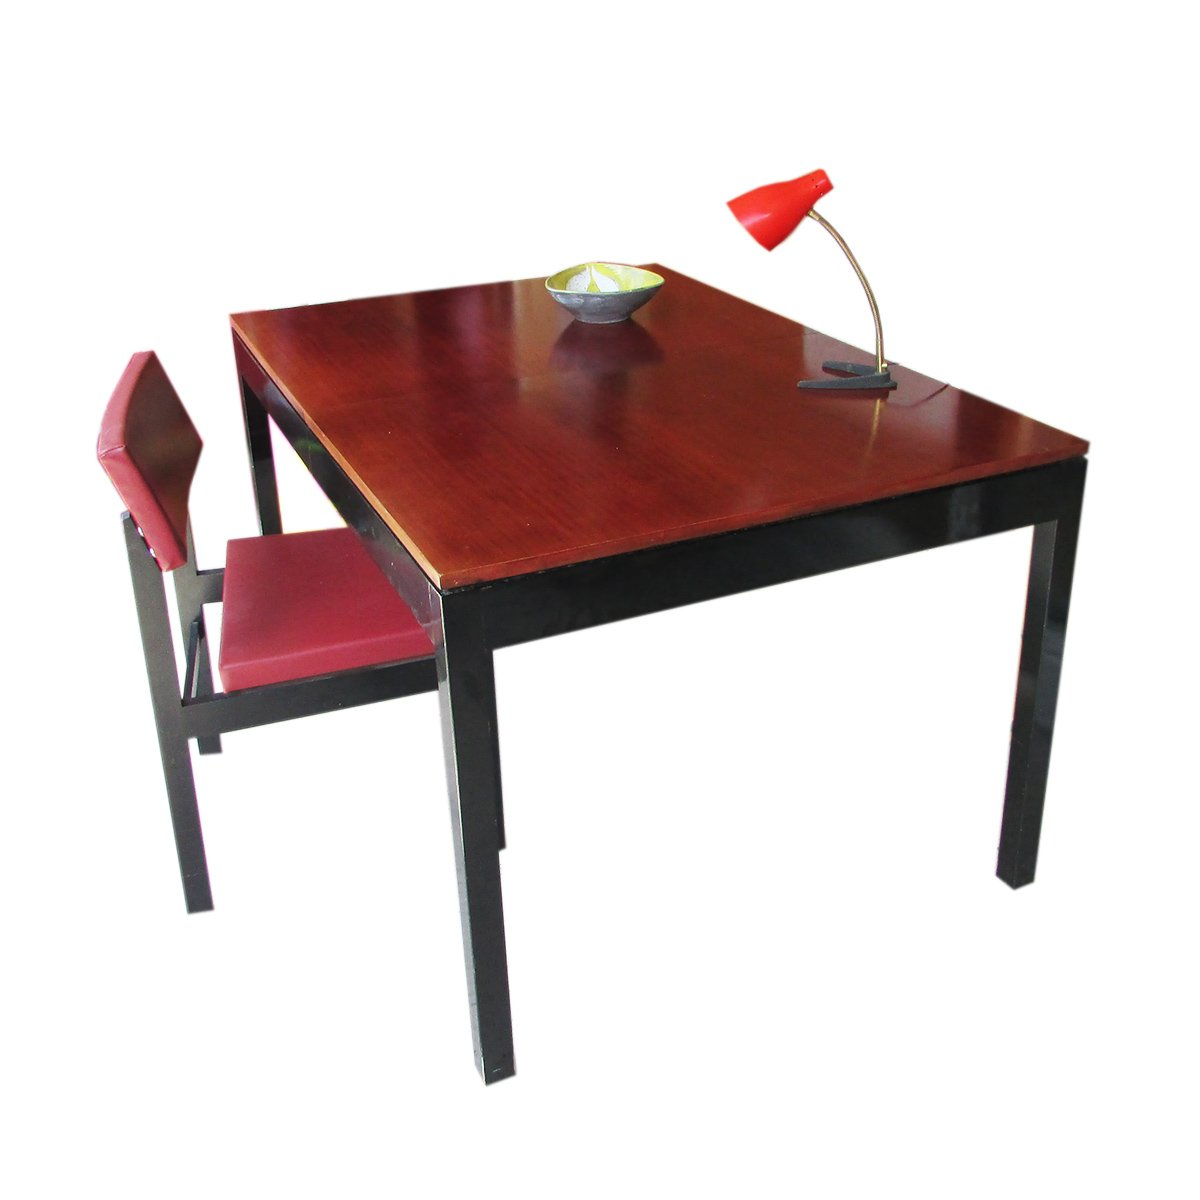 table de salle manger en teck rallonge de bs c suisse 1960s en vente sur pamono. Black Bedroom Furniture Sets. Home Design Ideas